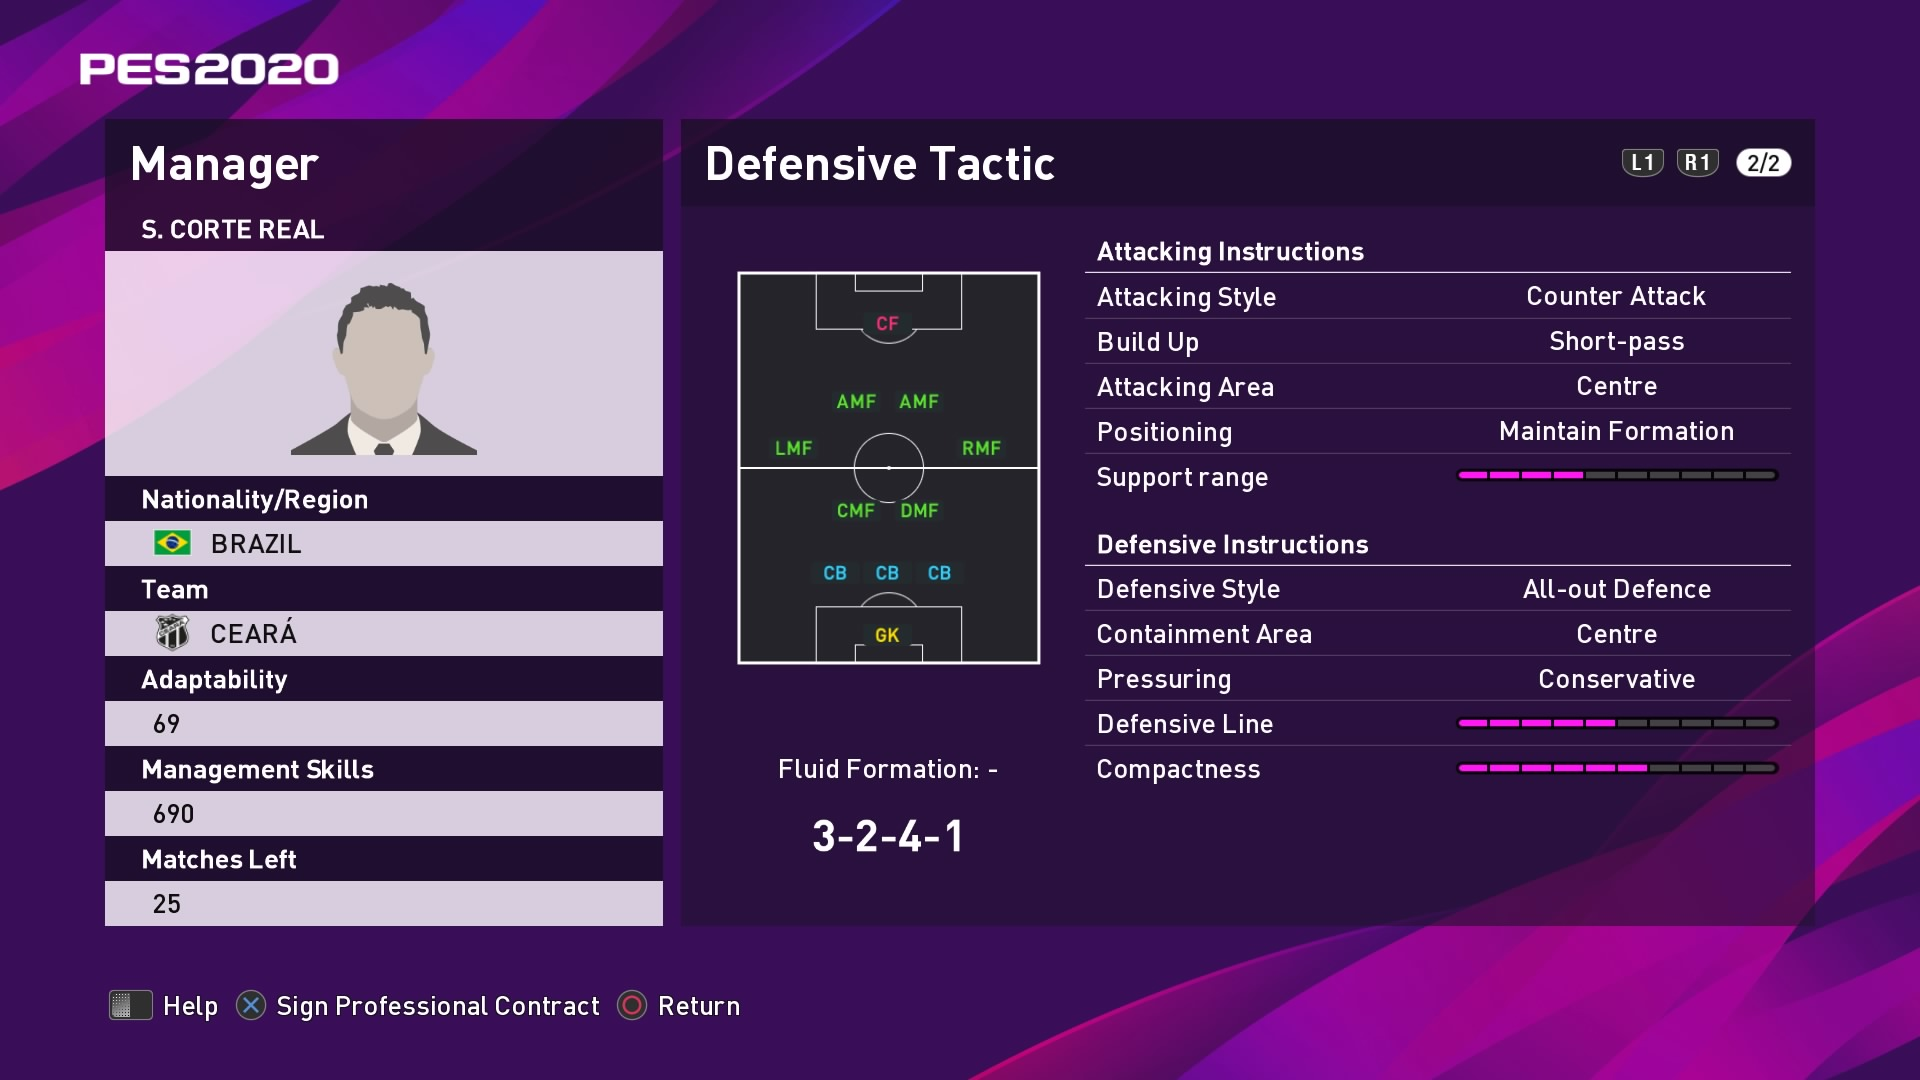 S. Corte Real (Enderson Moreira) Defensive Tactic in PES 2020 myClub